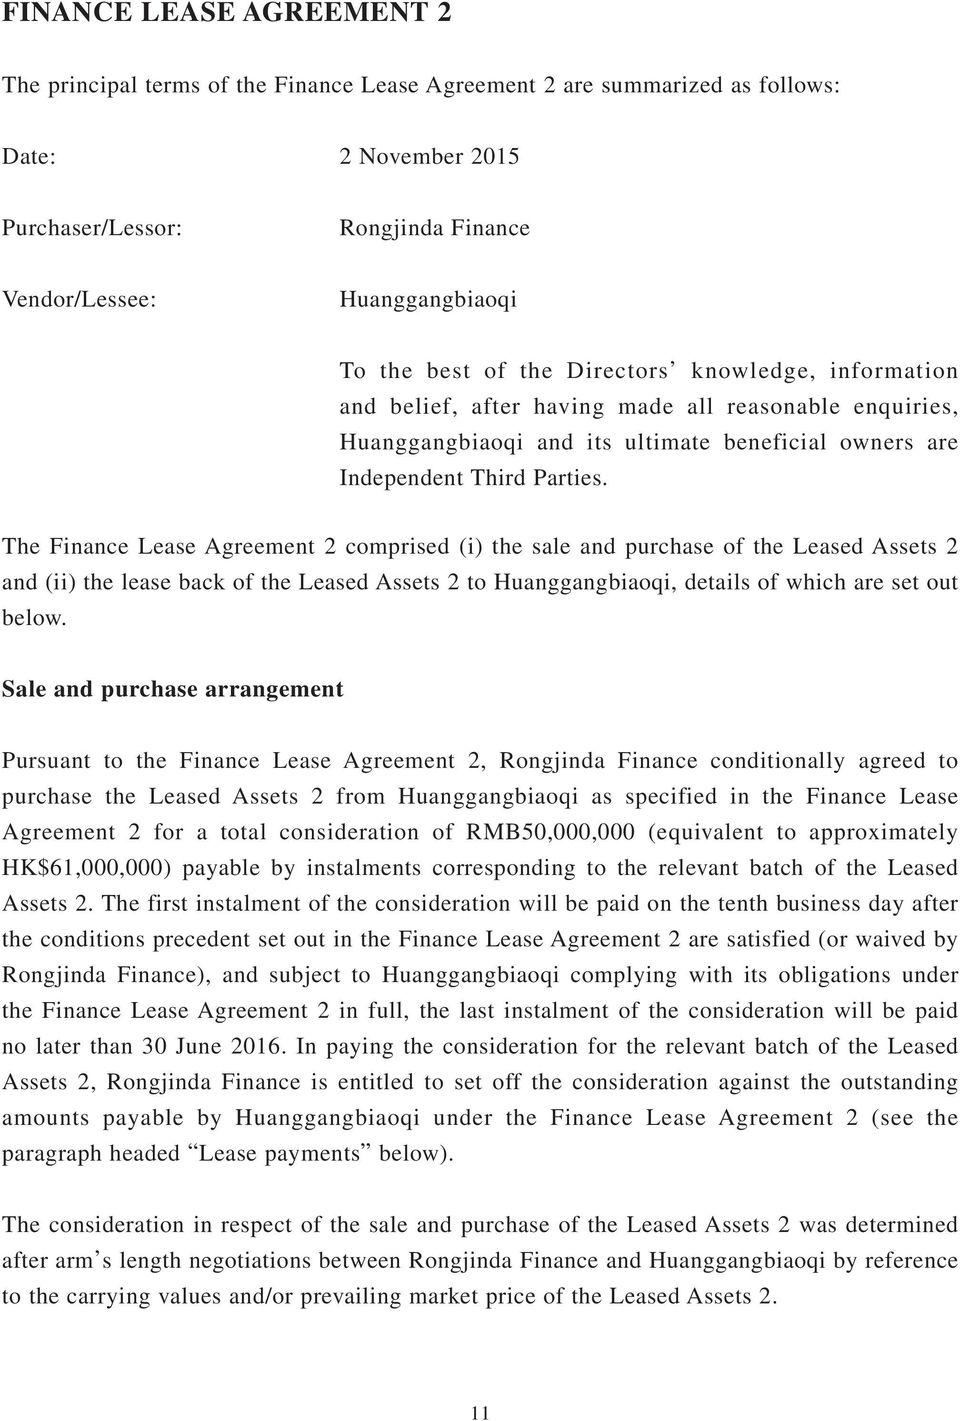 The Finance Lease Agreement 2 comprised (i) the sale and purchase of the Leased Assets 2 and (ii) the lease back of the Leased Assets 2 to Huanggangbiaoqi, details of which are set out below.